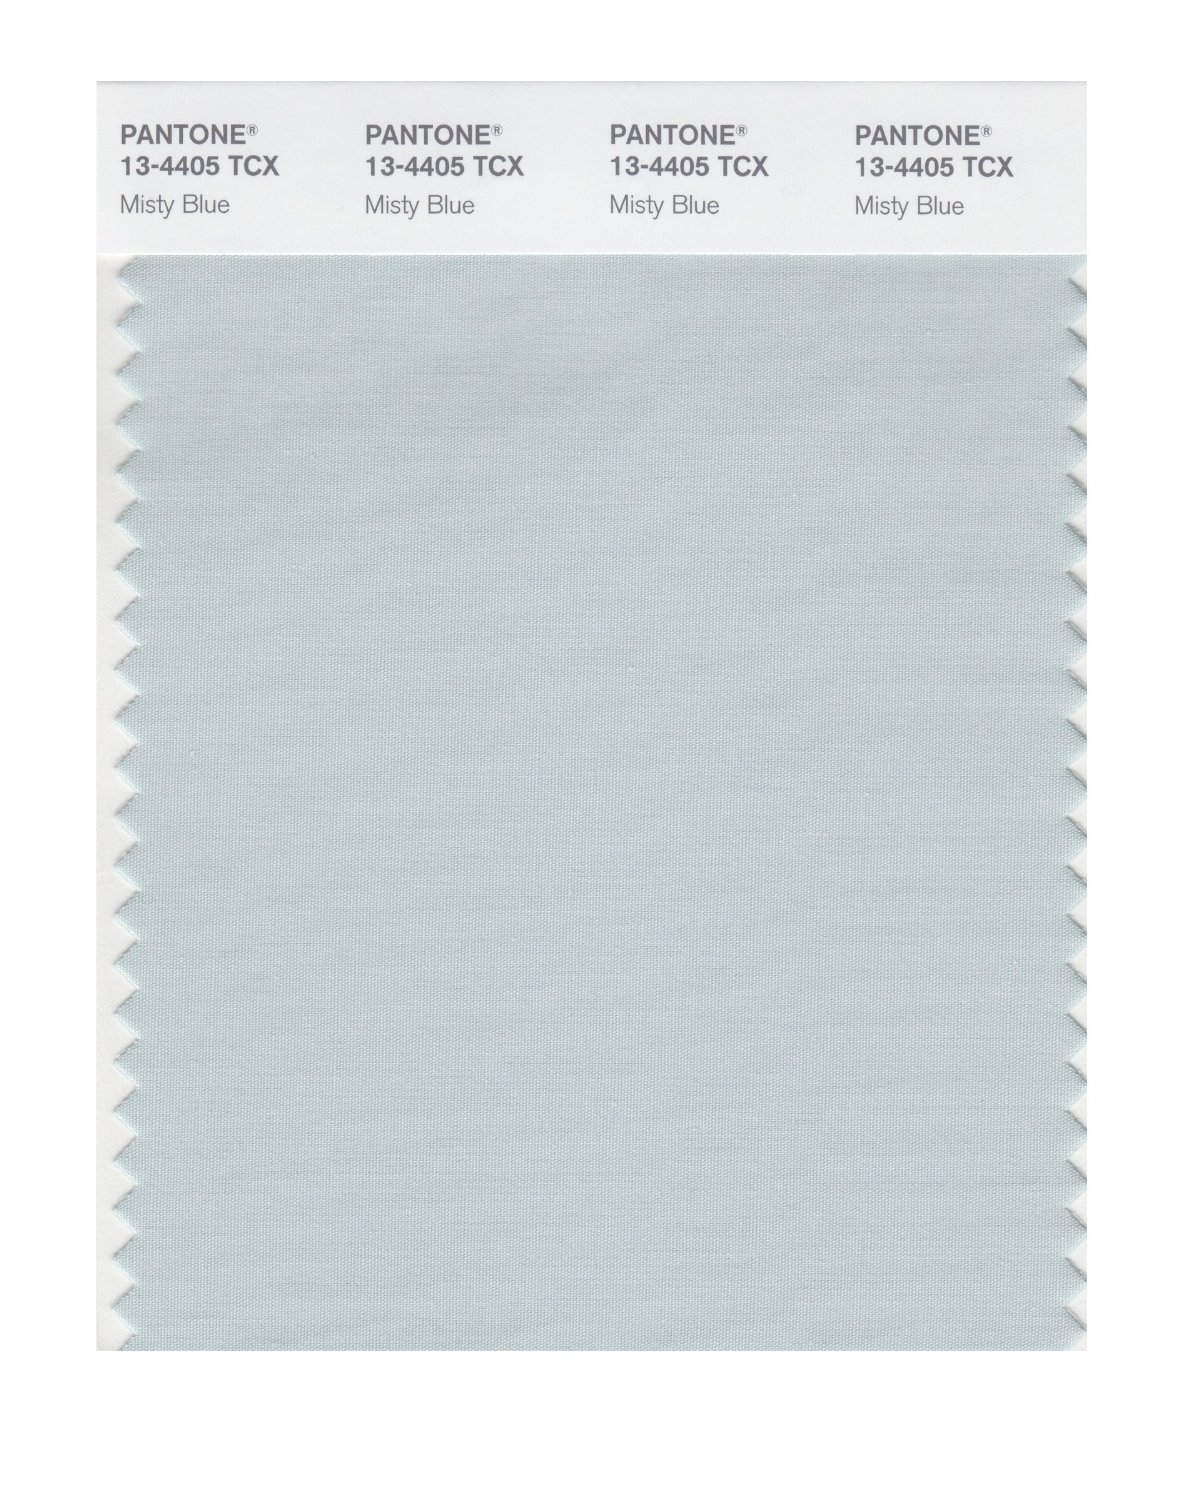 Pantone Smart Swatch 13-4405 Misty Blue